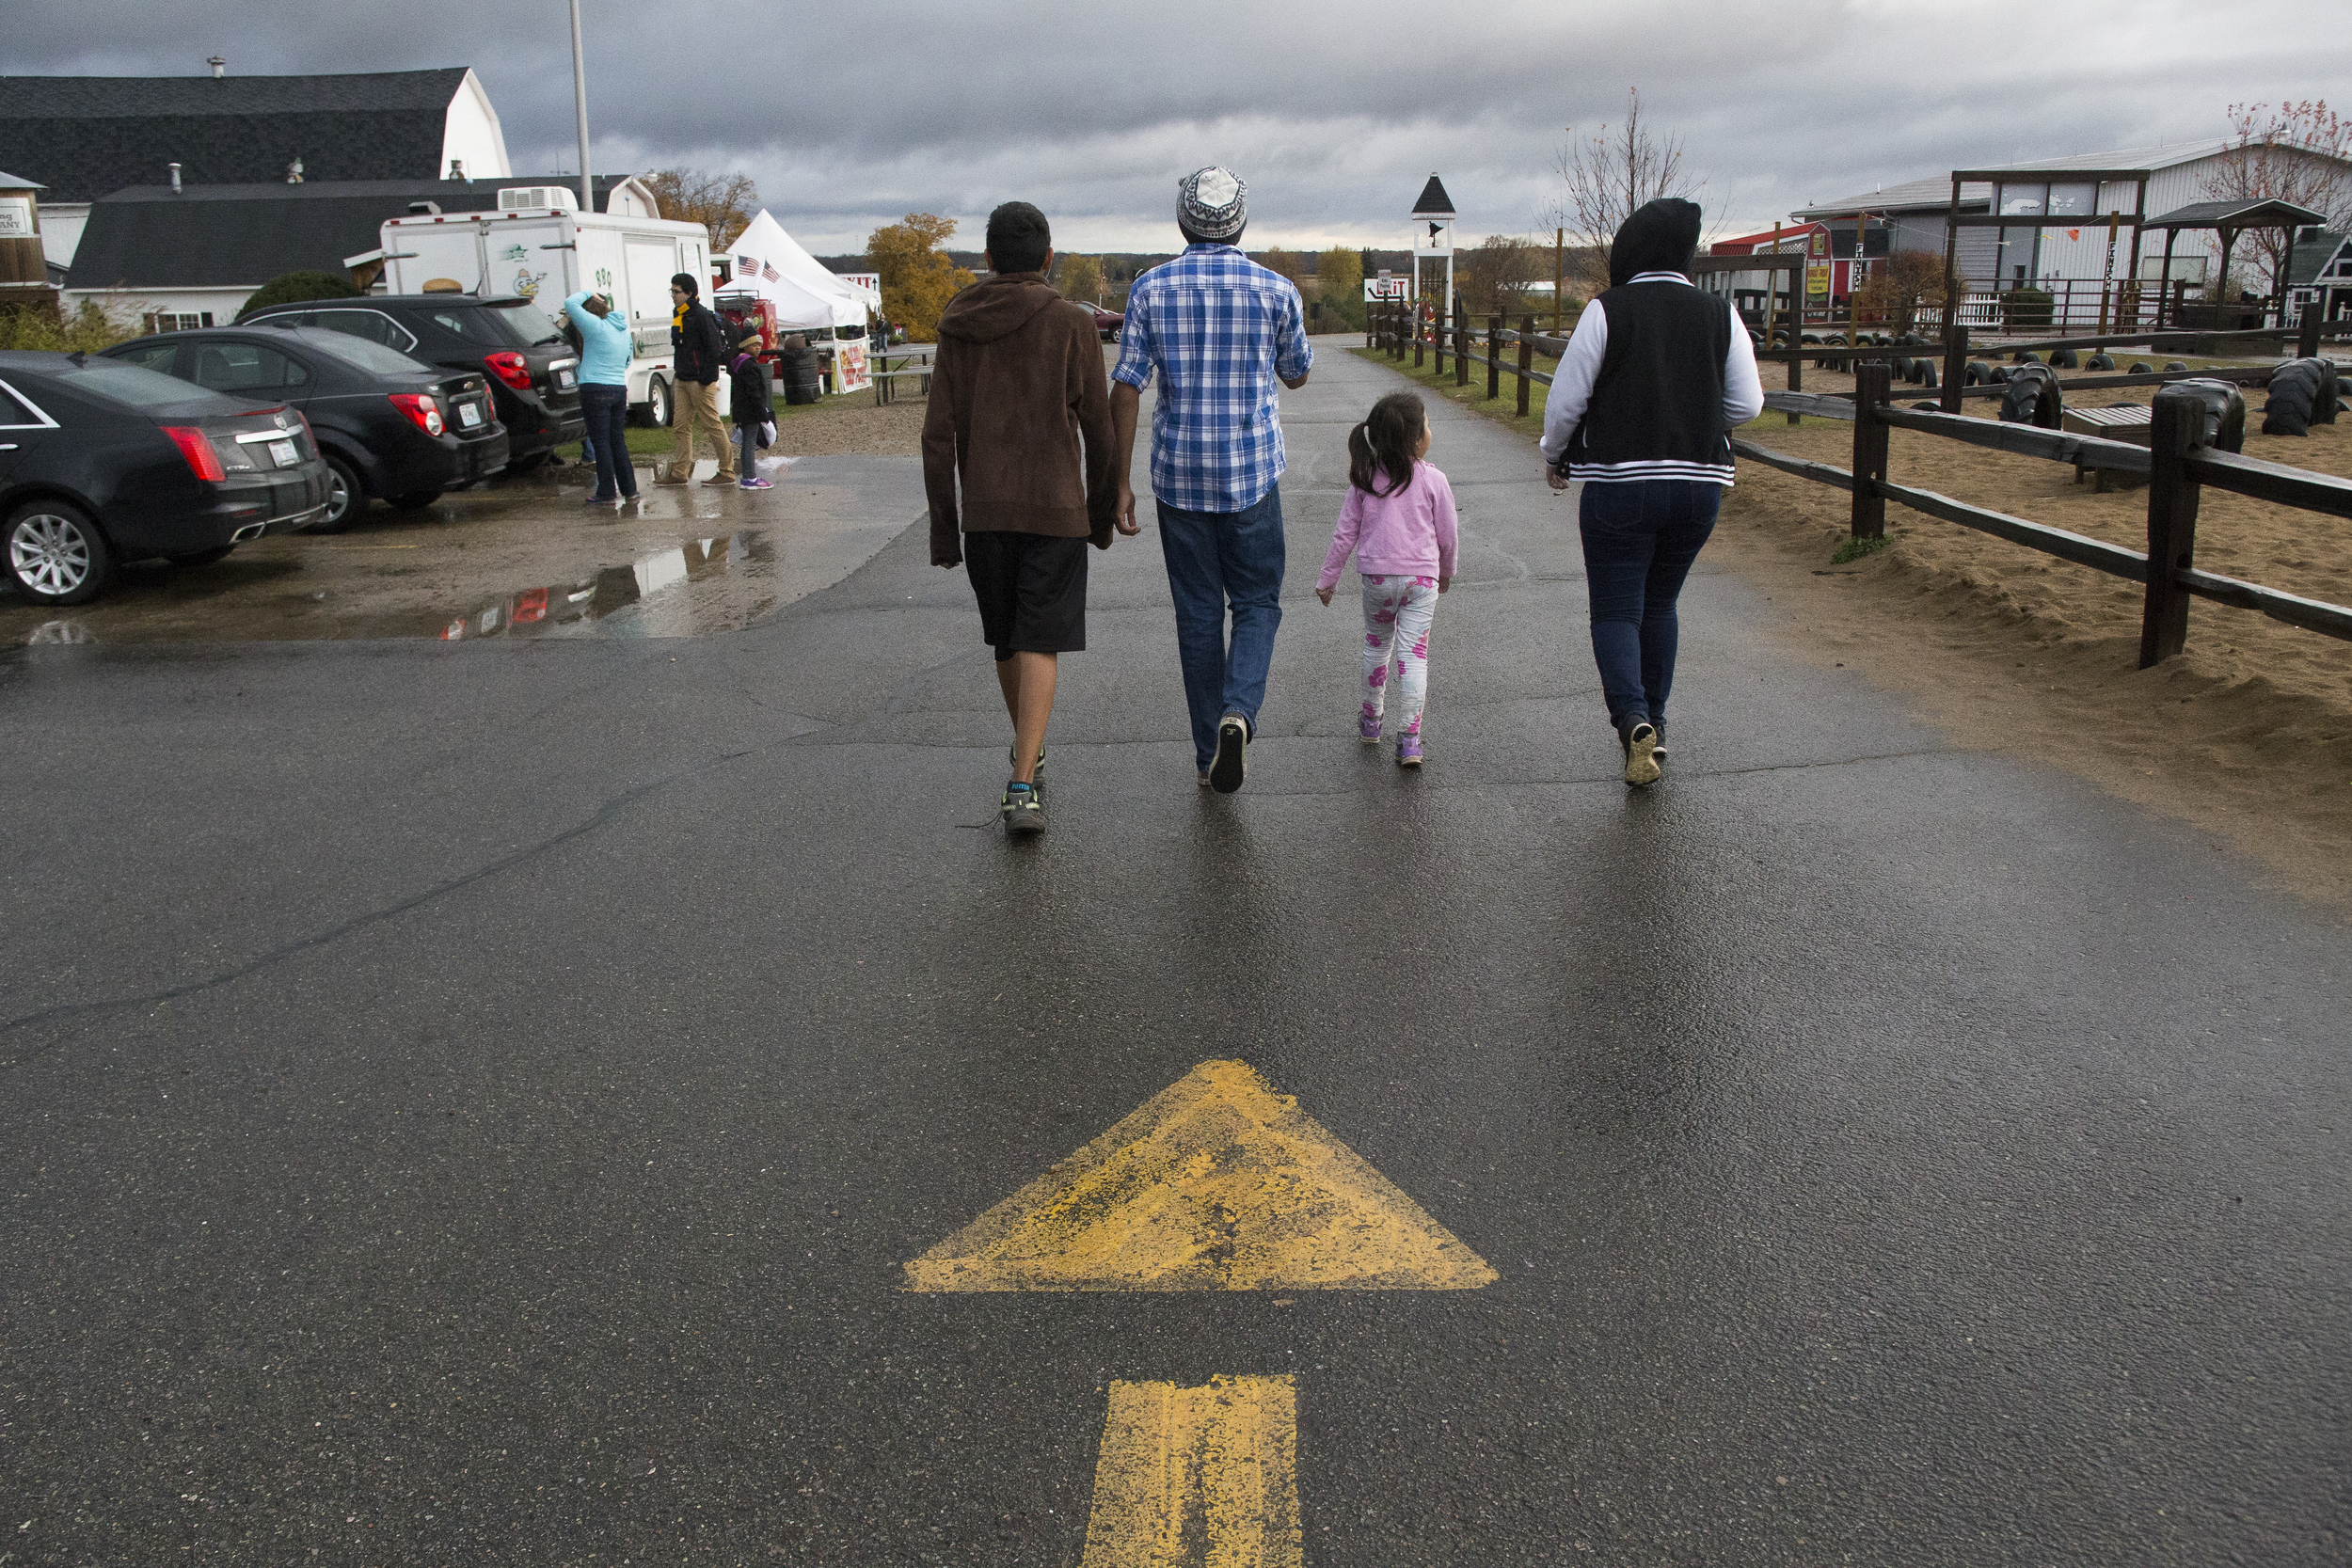 The Jurado siblings live and work at Uncle John's Cider Mill, alongside their parents.The three older siblings work nearly 40 hours a week, while attending school in Saint Johns.